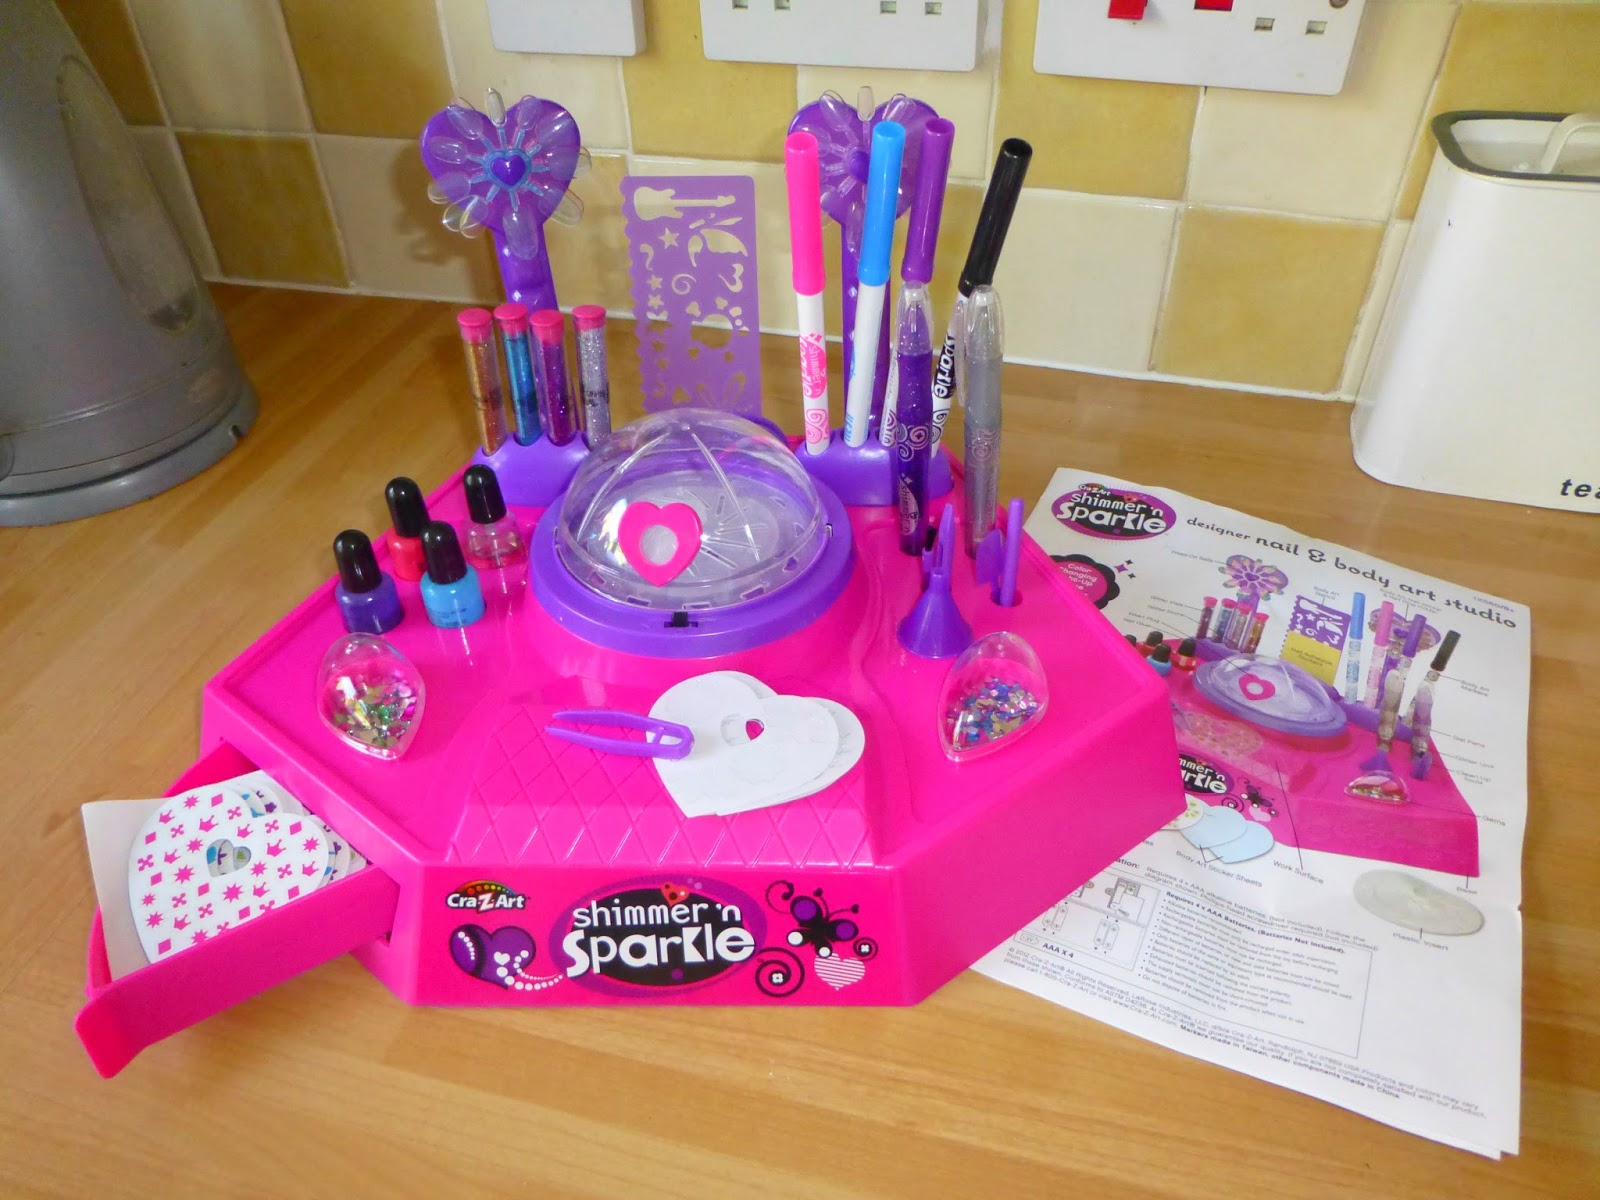 Shimmer n sparkle designer nail and body art studio review the workstation was really easy to put together and took around 5 minutes 4 aaa batteries are needed for the stations colour changing glitter dome prinsesfo Choice Image